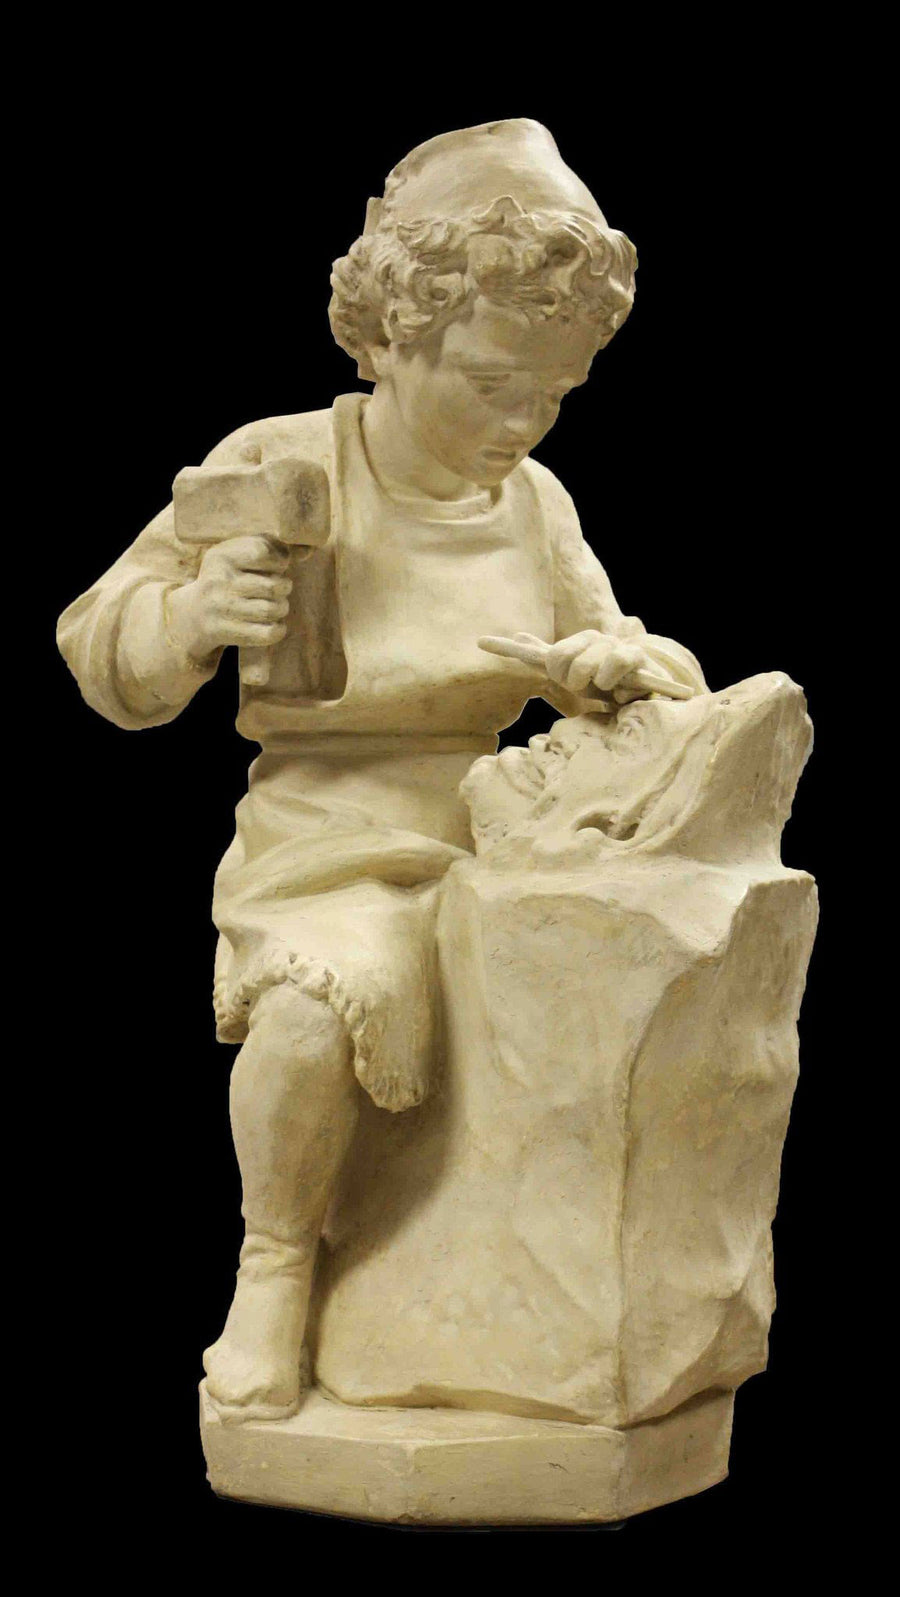 photo with black background of plaster cast of child, namely Michelangelo, on stool with chisel and hammer in hand and sculpting a faun mask from a block of stone